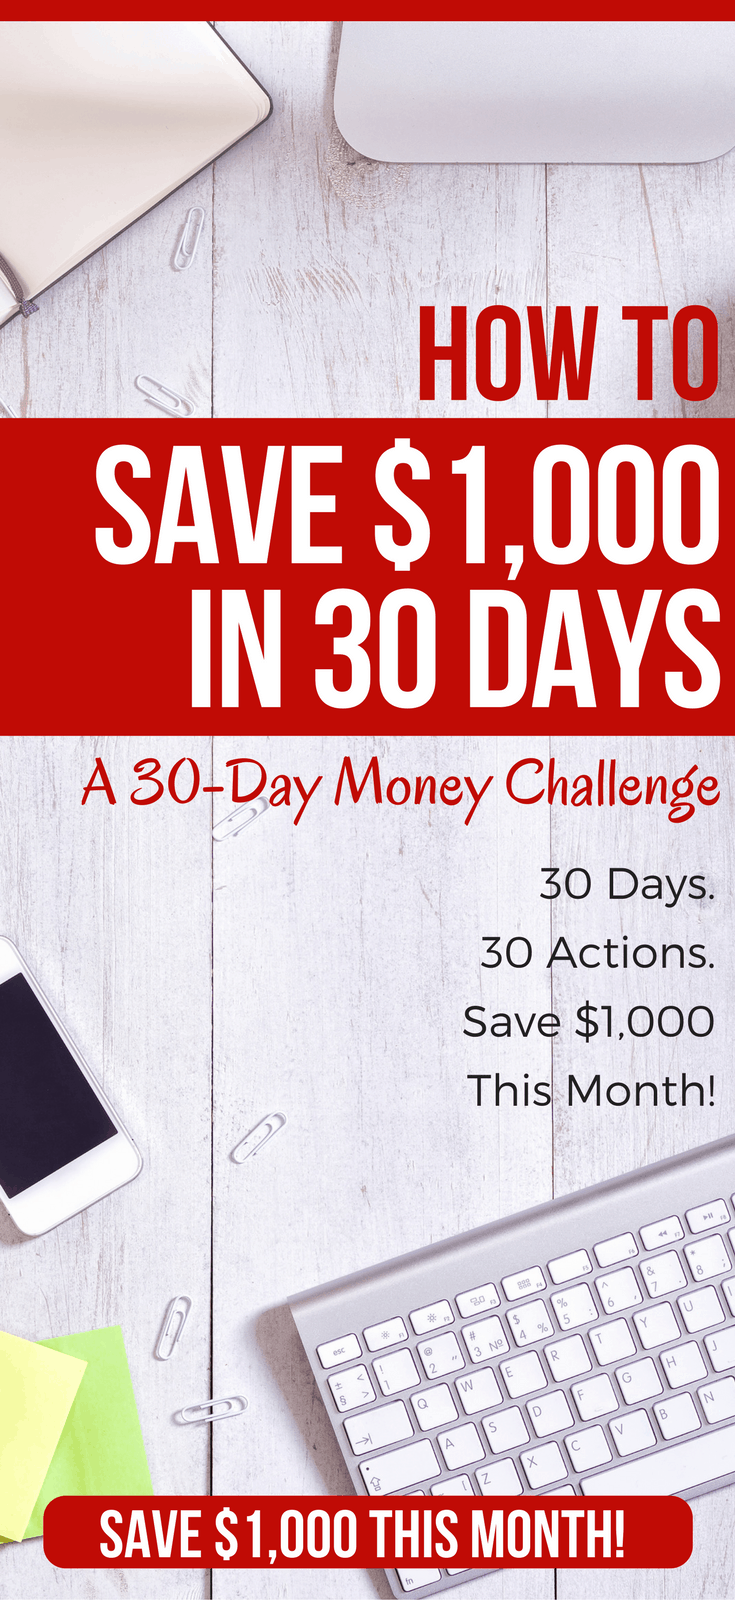 How To Save $1,000 In A Month: A 30-Day Money Challenge money challenge | how to save money | how to save money | save money challenge 30 day | saving money tips | saving money ideas | saving money tips frugal living #savemoney #challenge #frugal #frugalliving